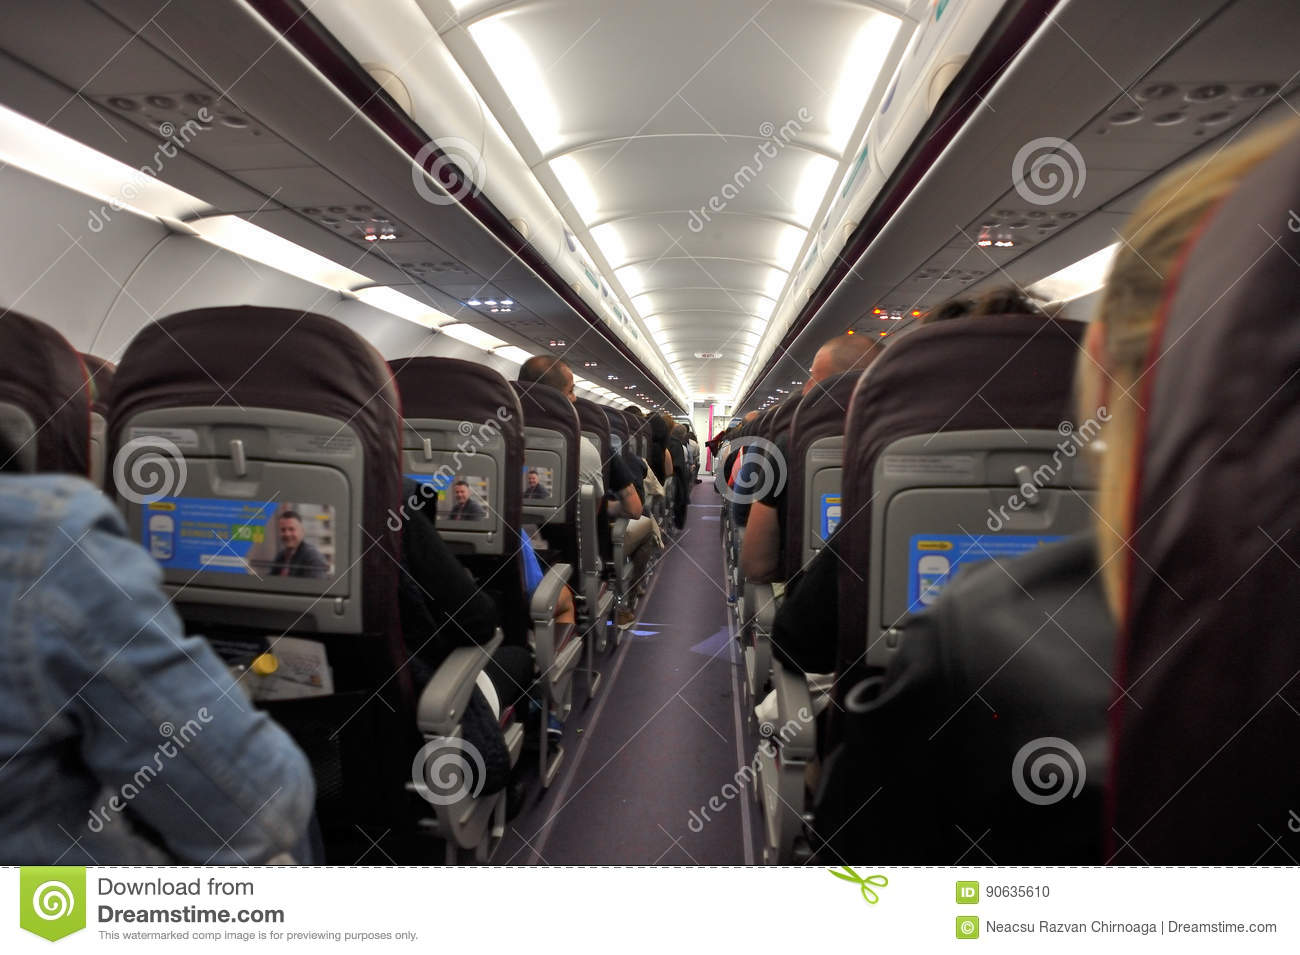 Wizzair Airplanes Interior View Editorial Image Image Of Seat Journey 90635610